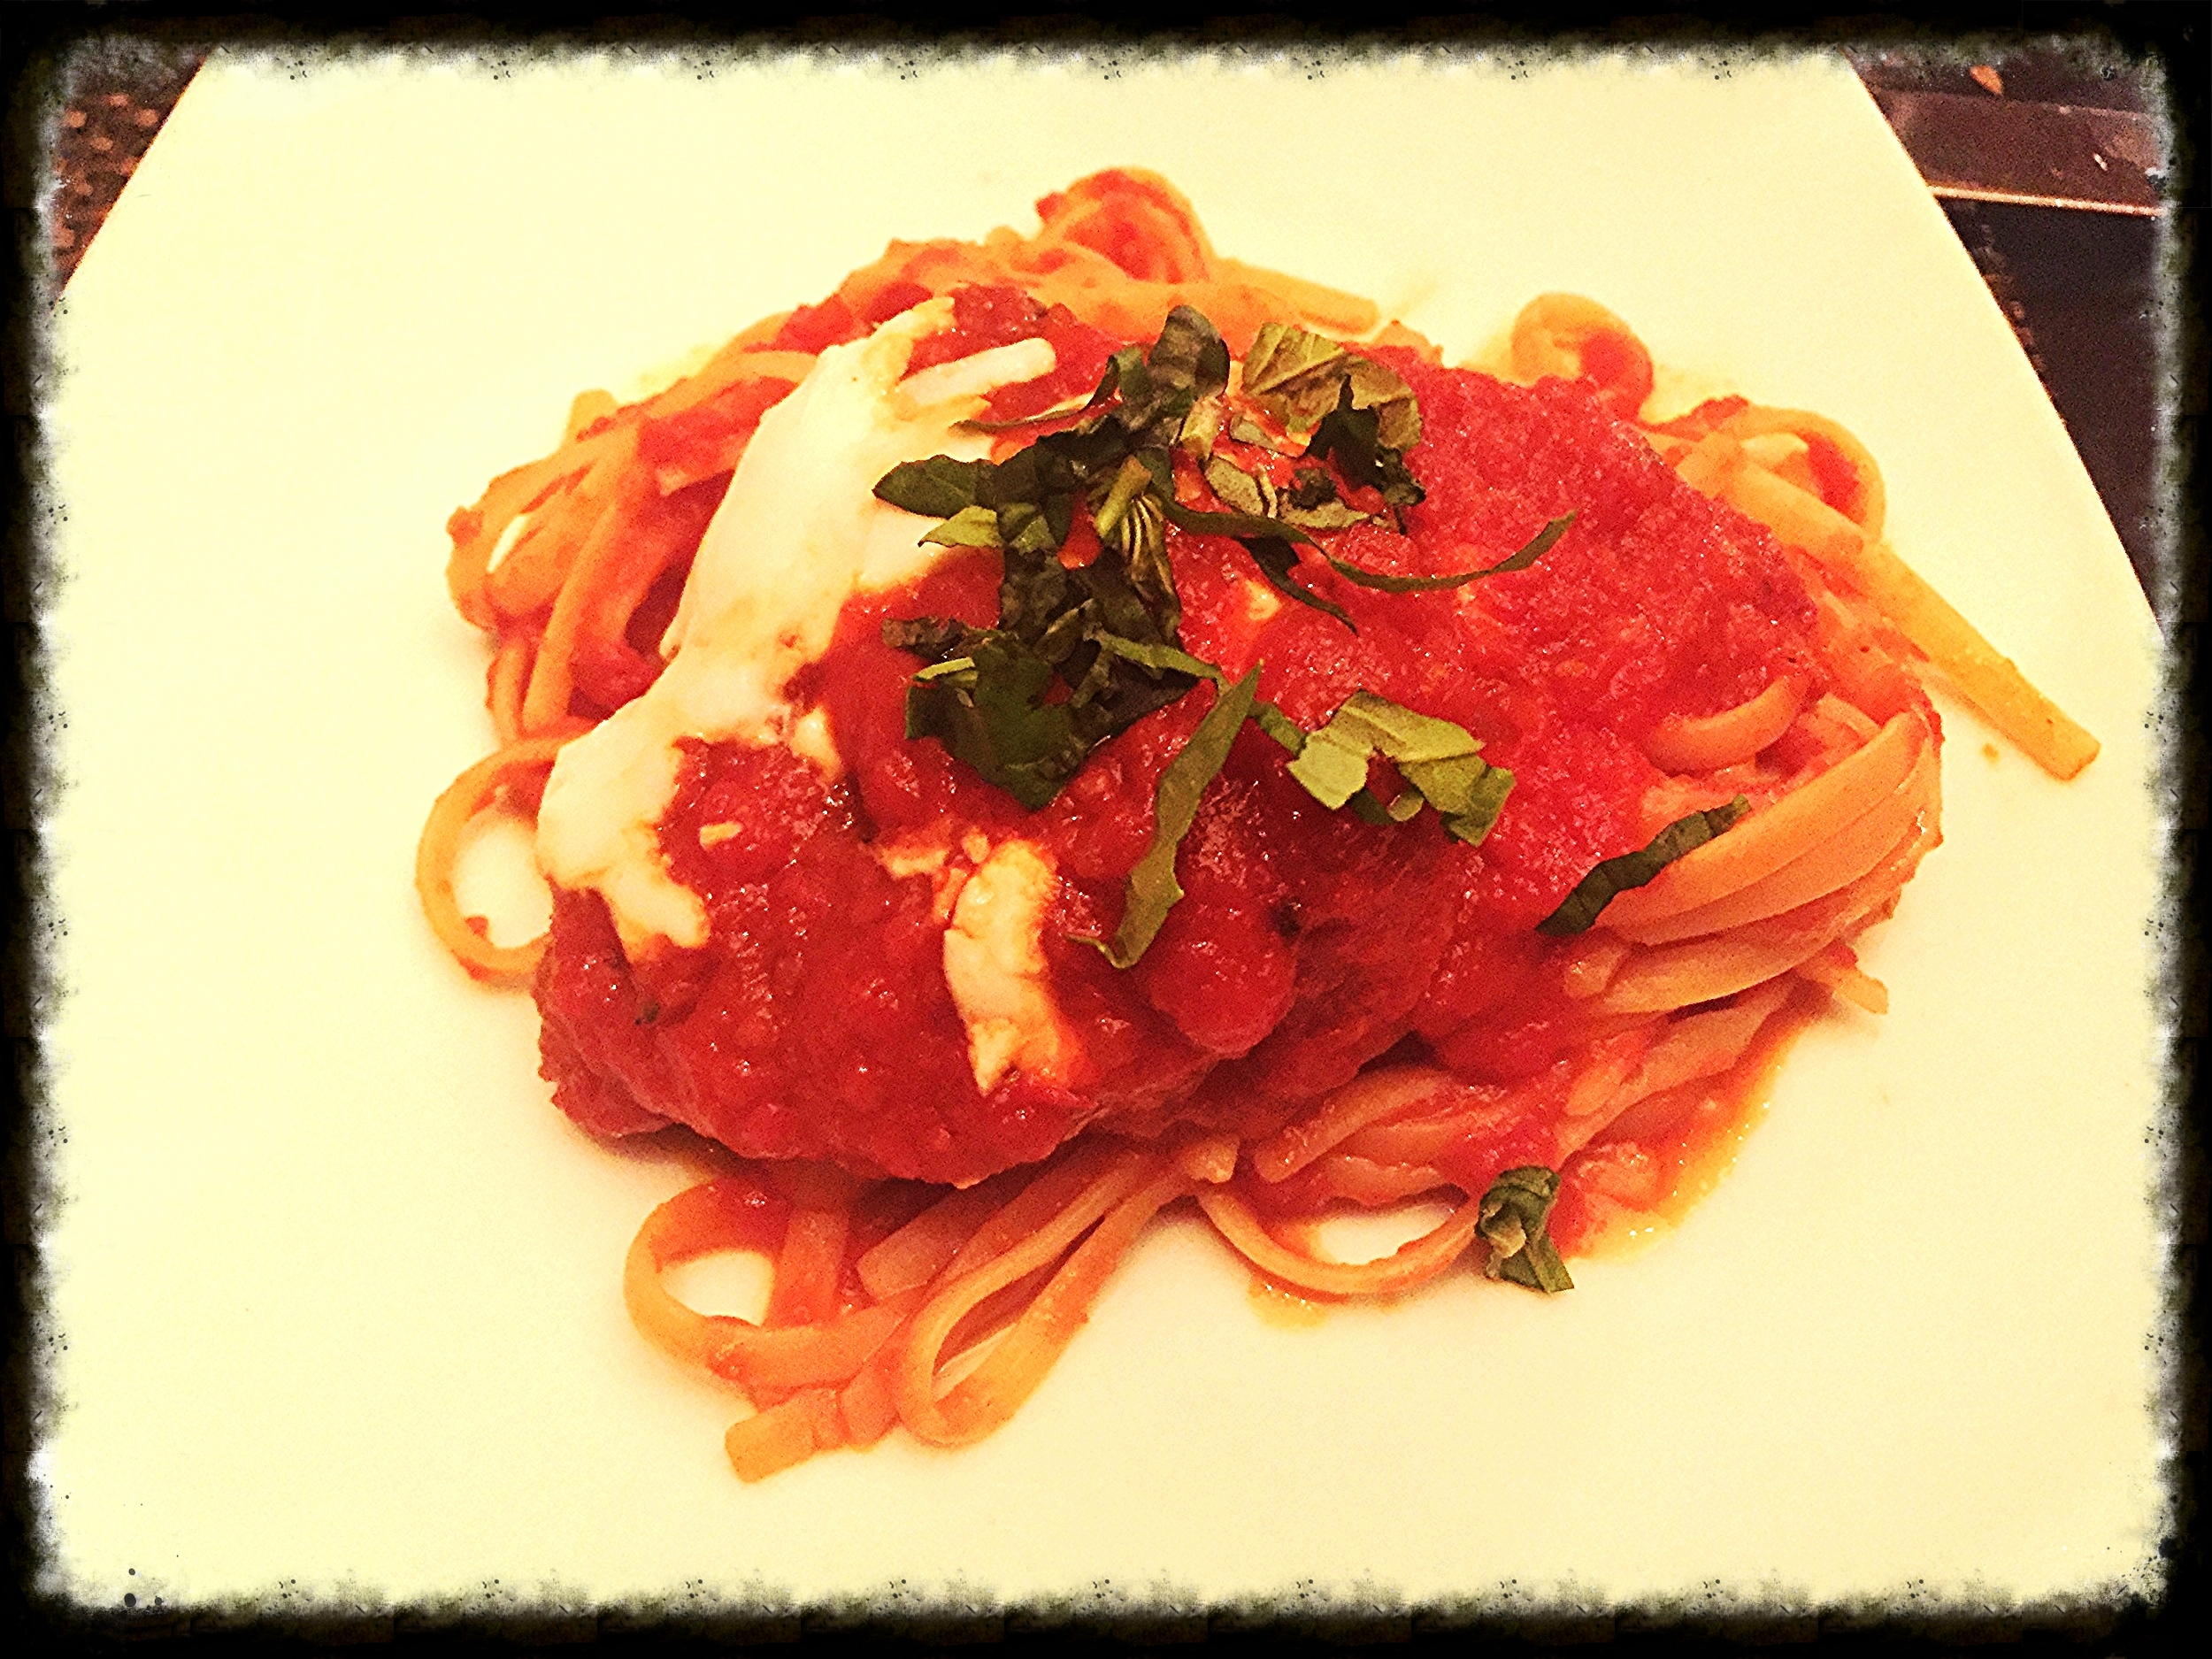 Vegan Gardein™ Chick'N parmigiano with linguine from Allegro at Wynn Las Vegas